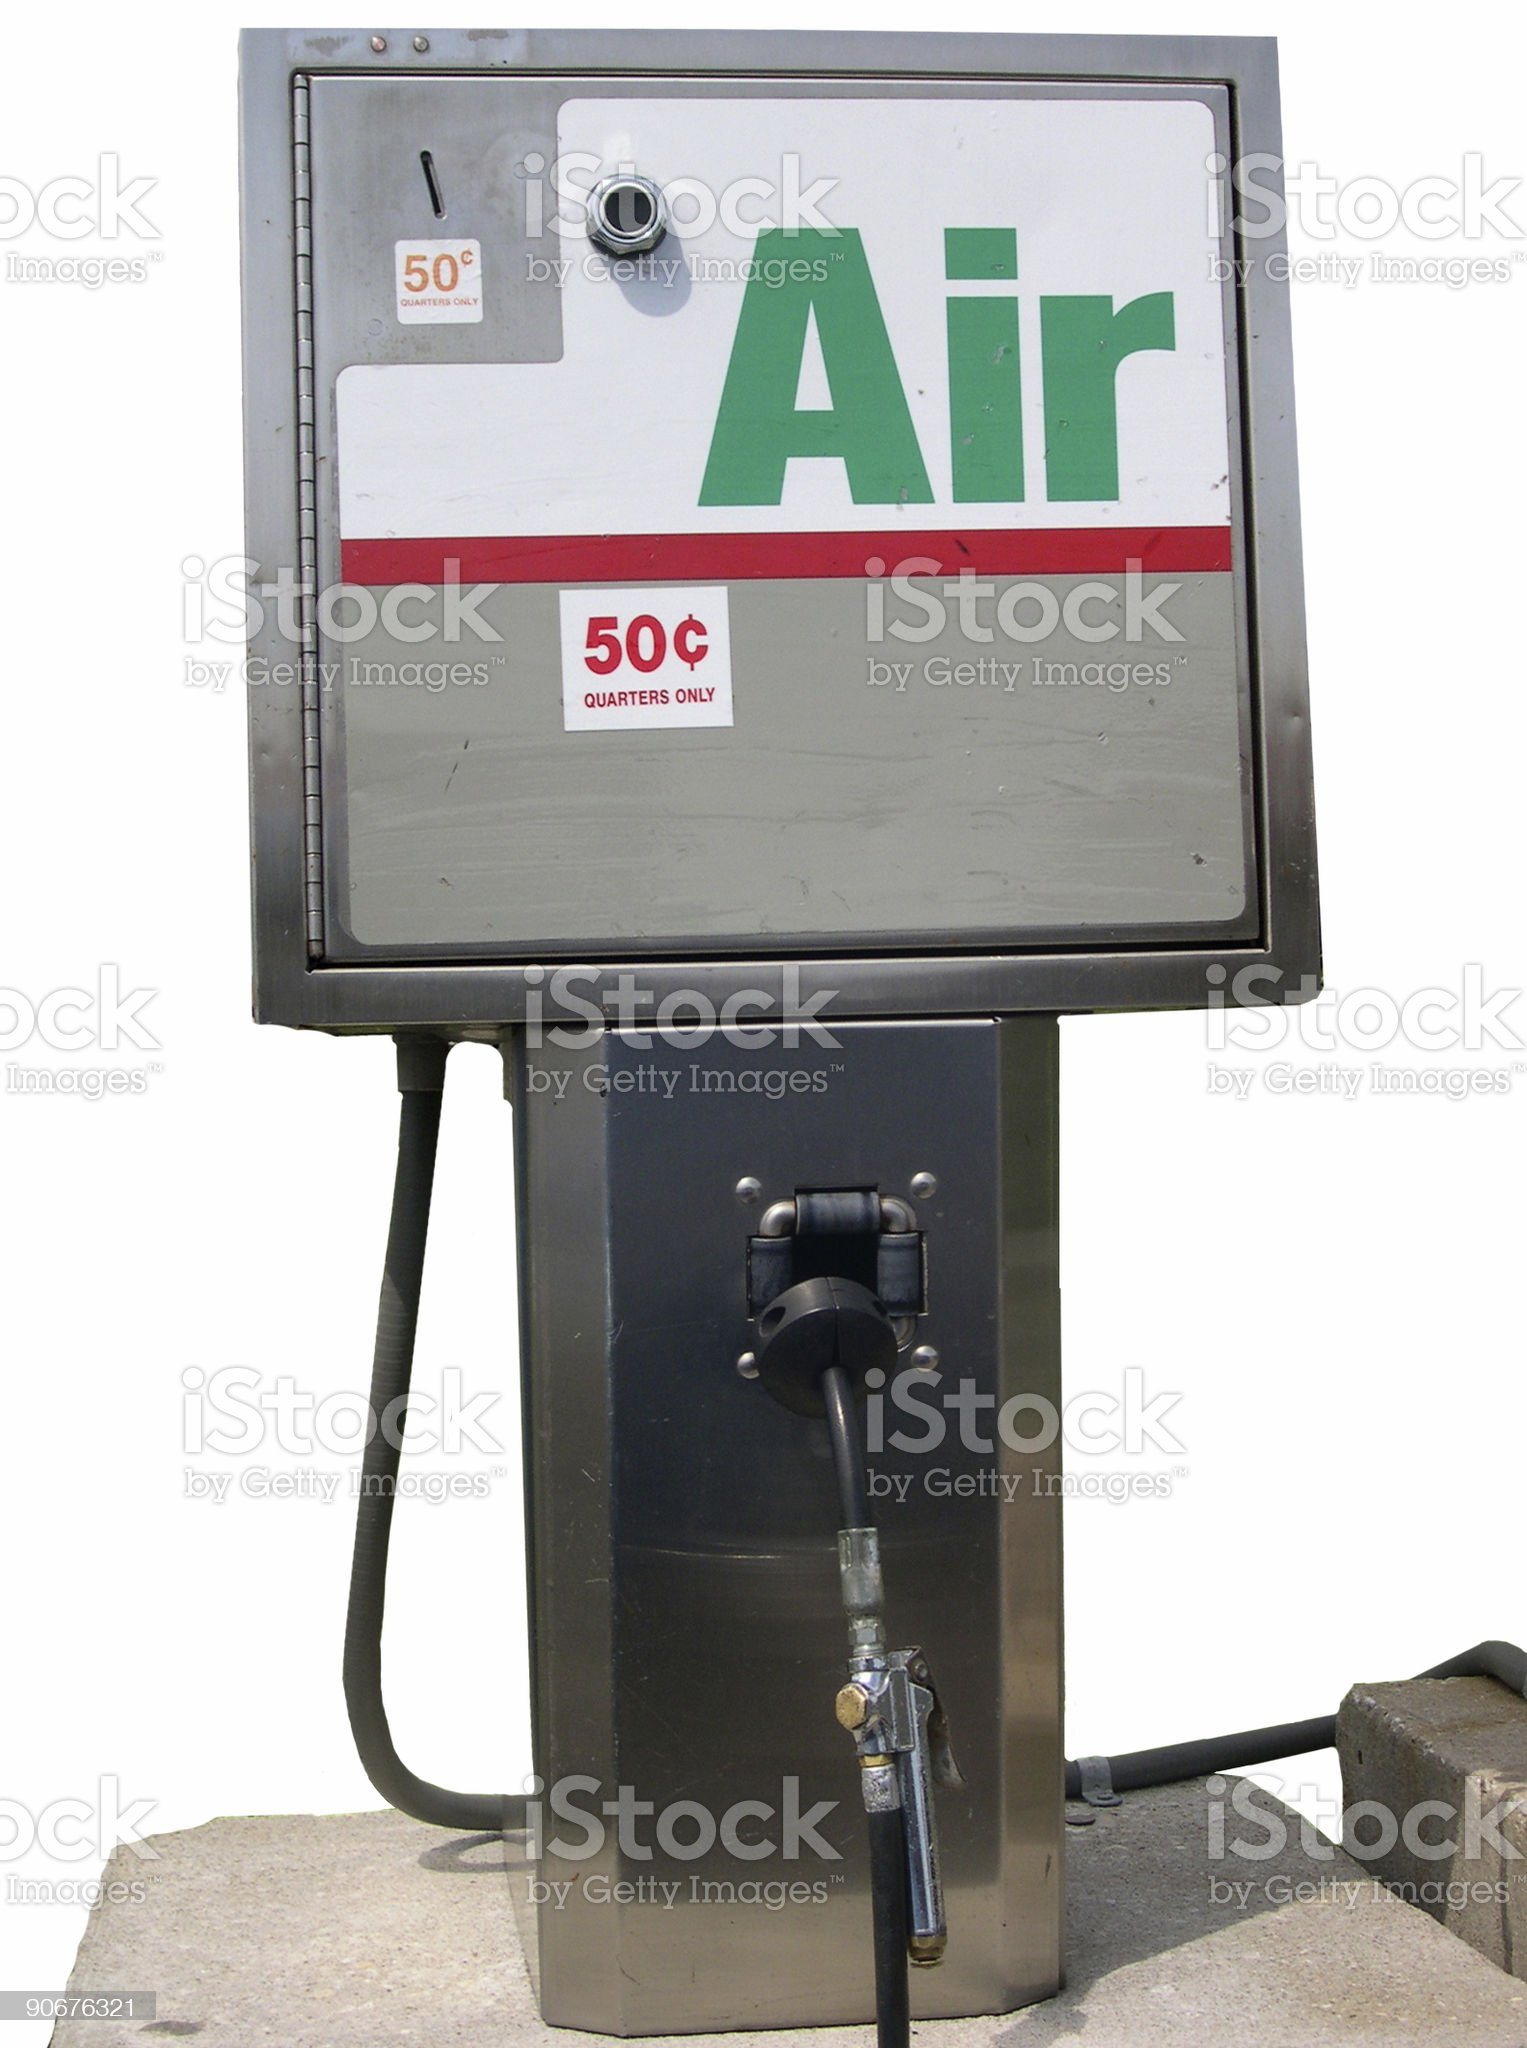 Air for Sale royalty-free stock photo